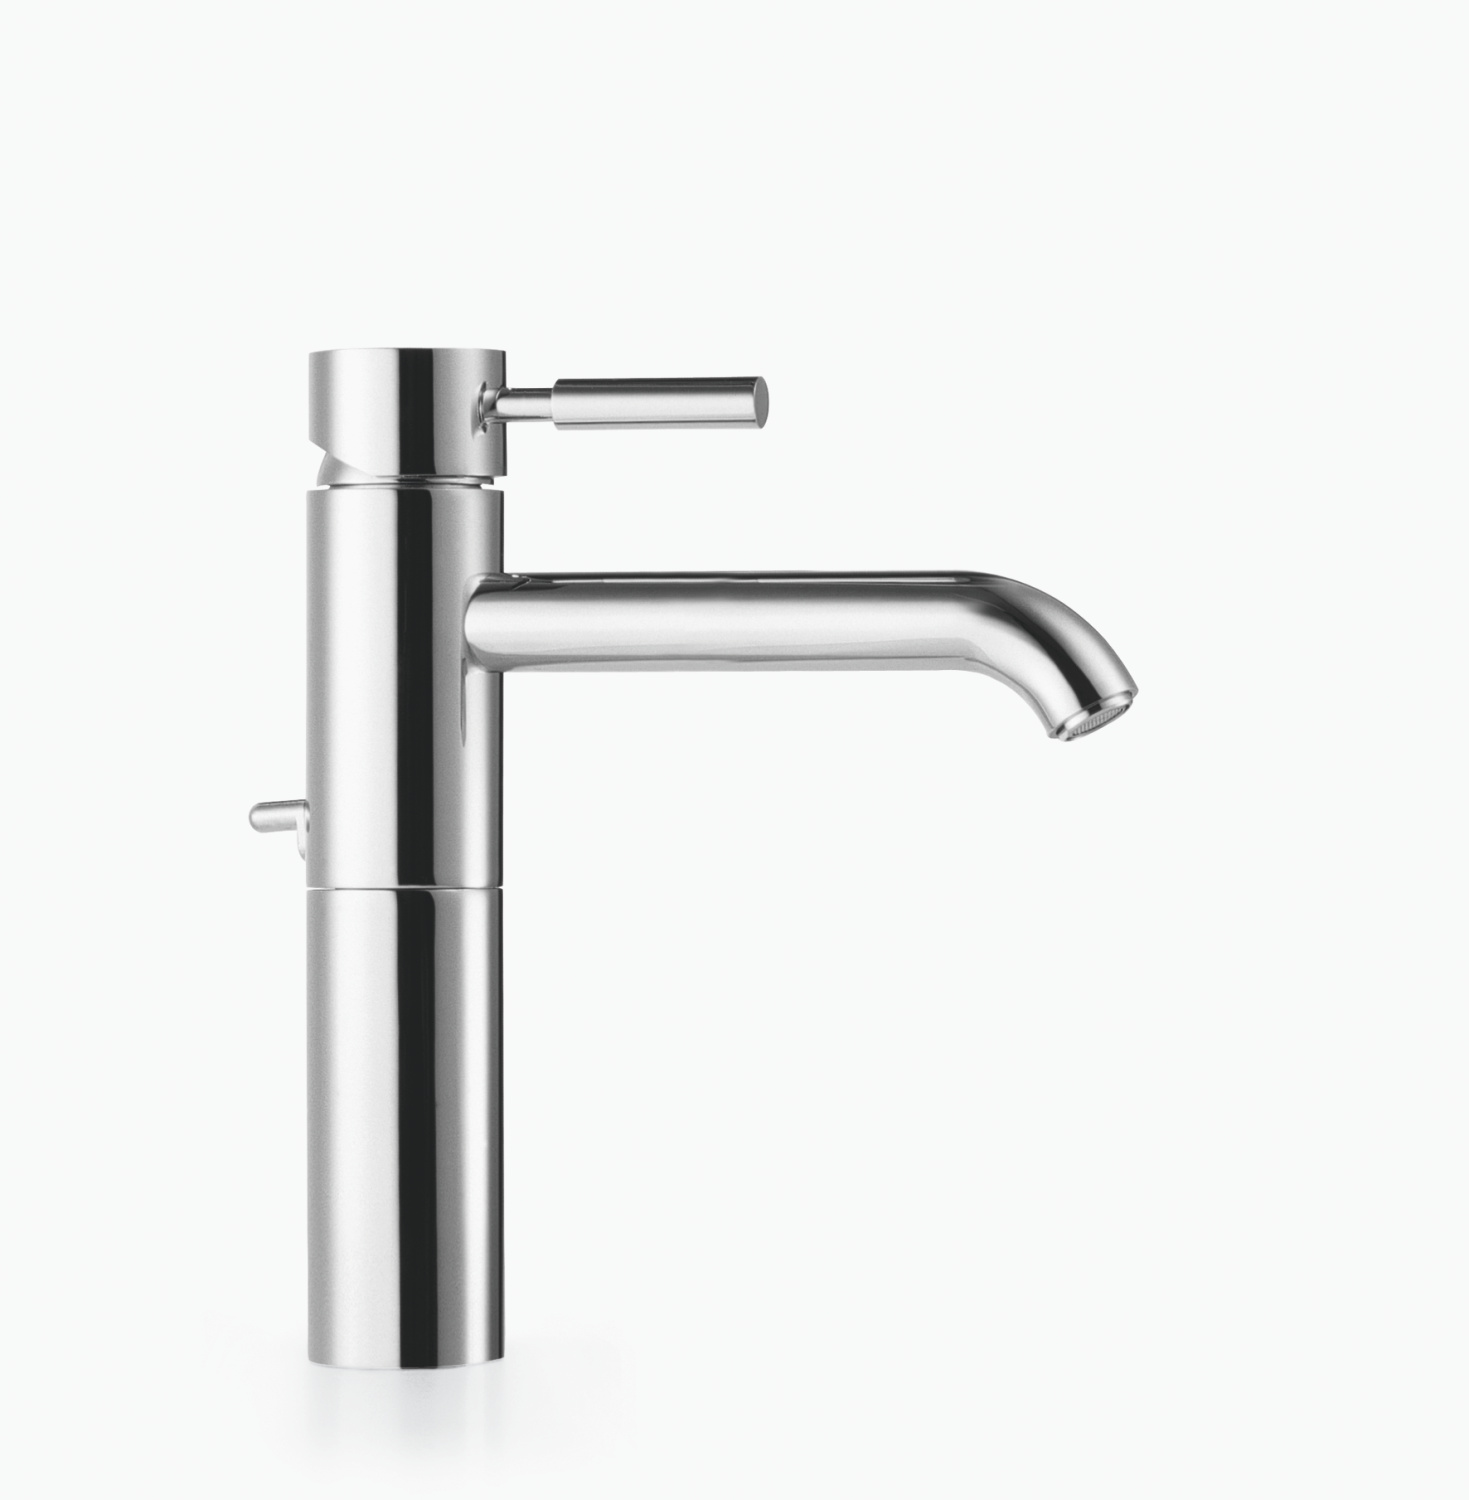 Single-lever basin mixer with raised base with pop-up waste - polished chrome - 33 538 625-00